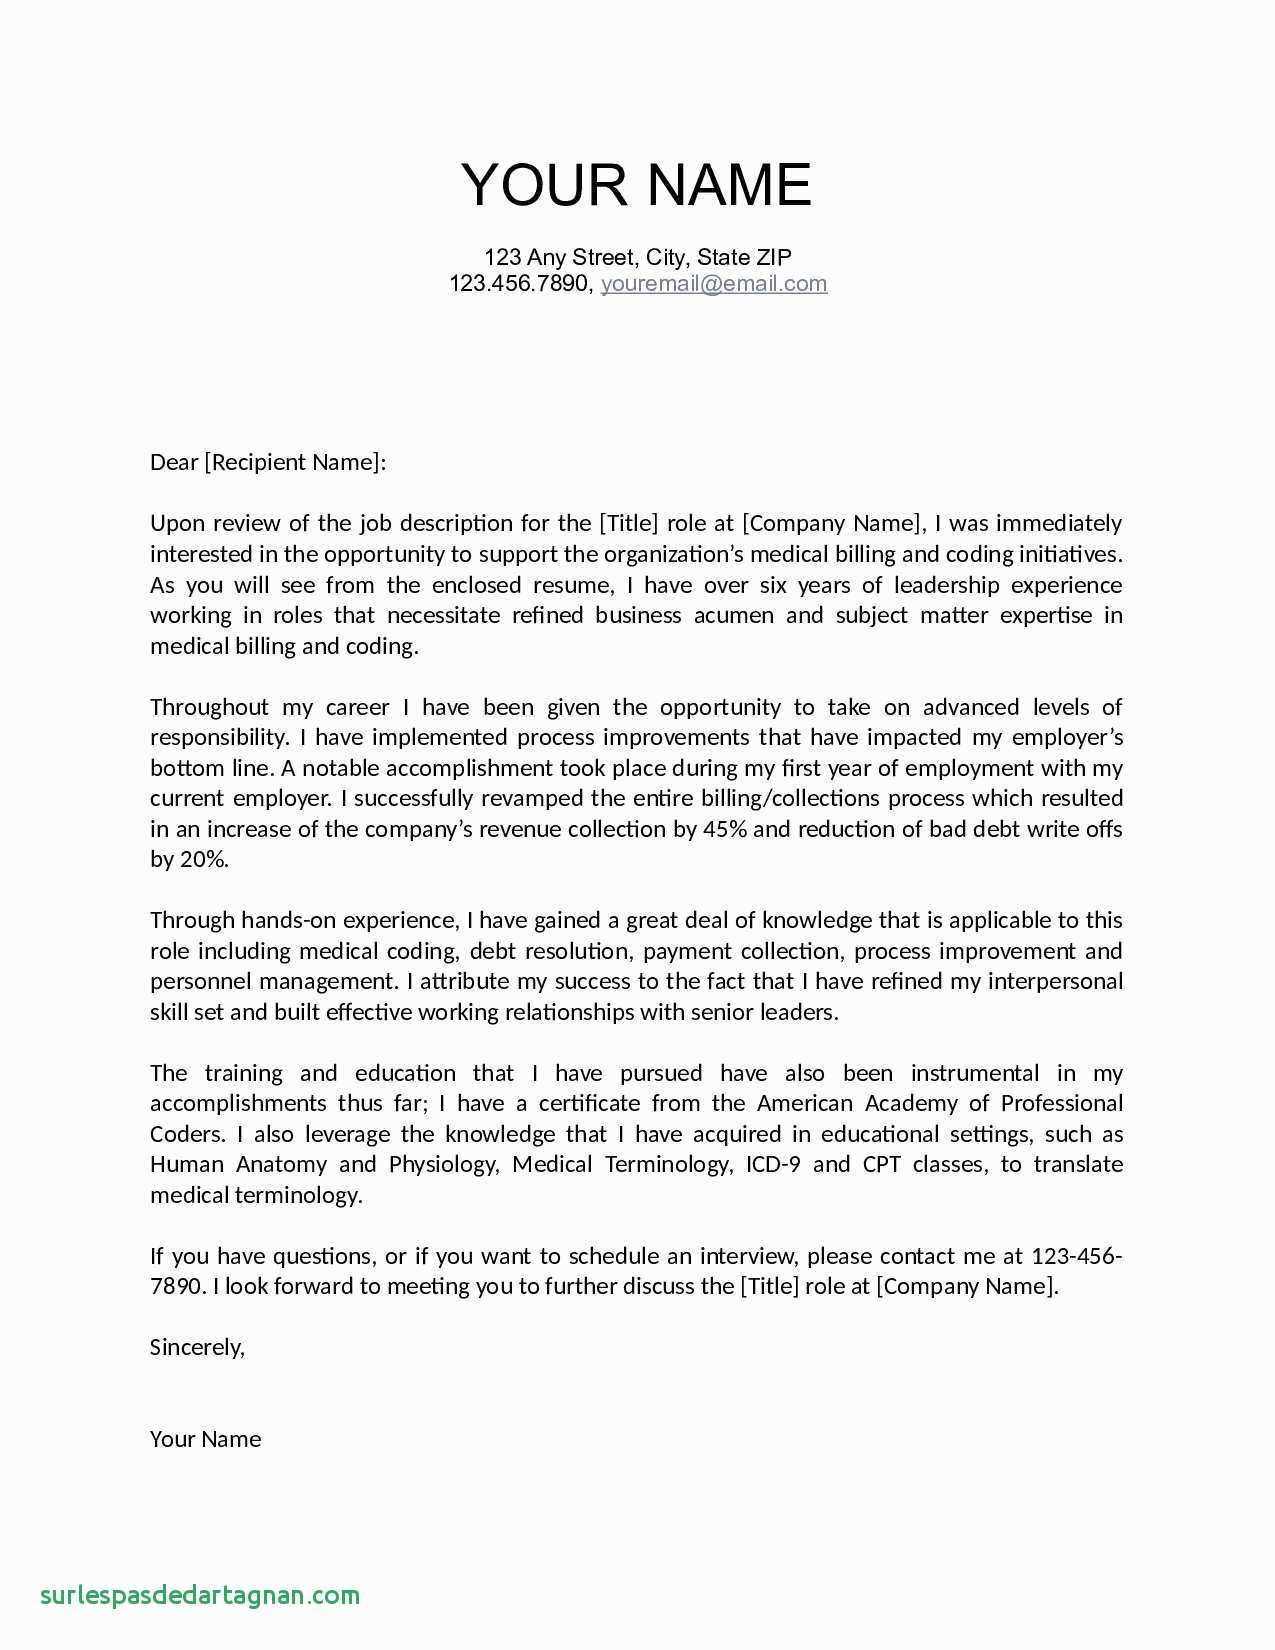 Creating A Cover Letter Template - How to Make Resume for Job Beautiful Fresh Job Fer Letter Template